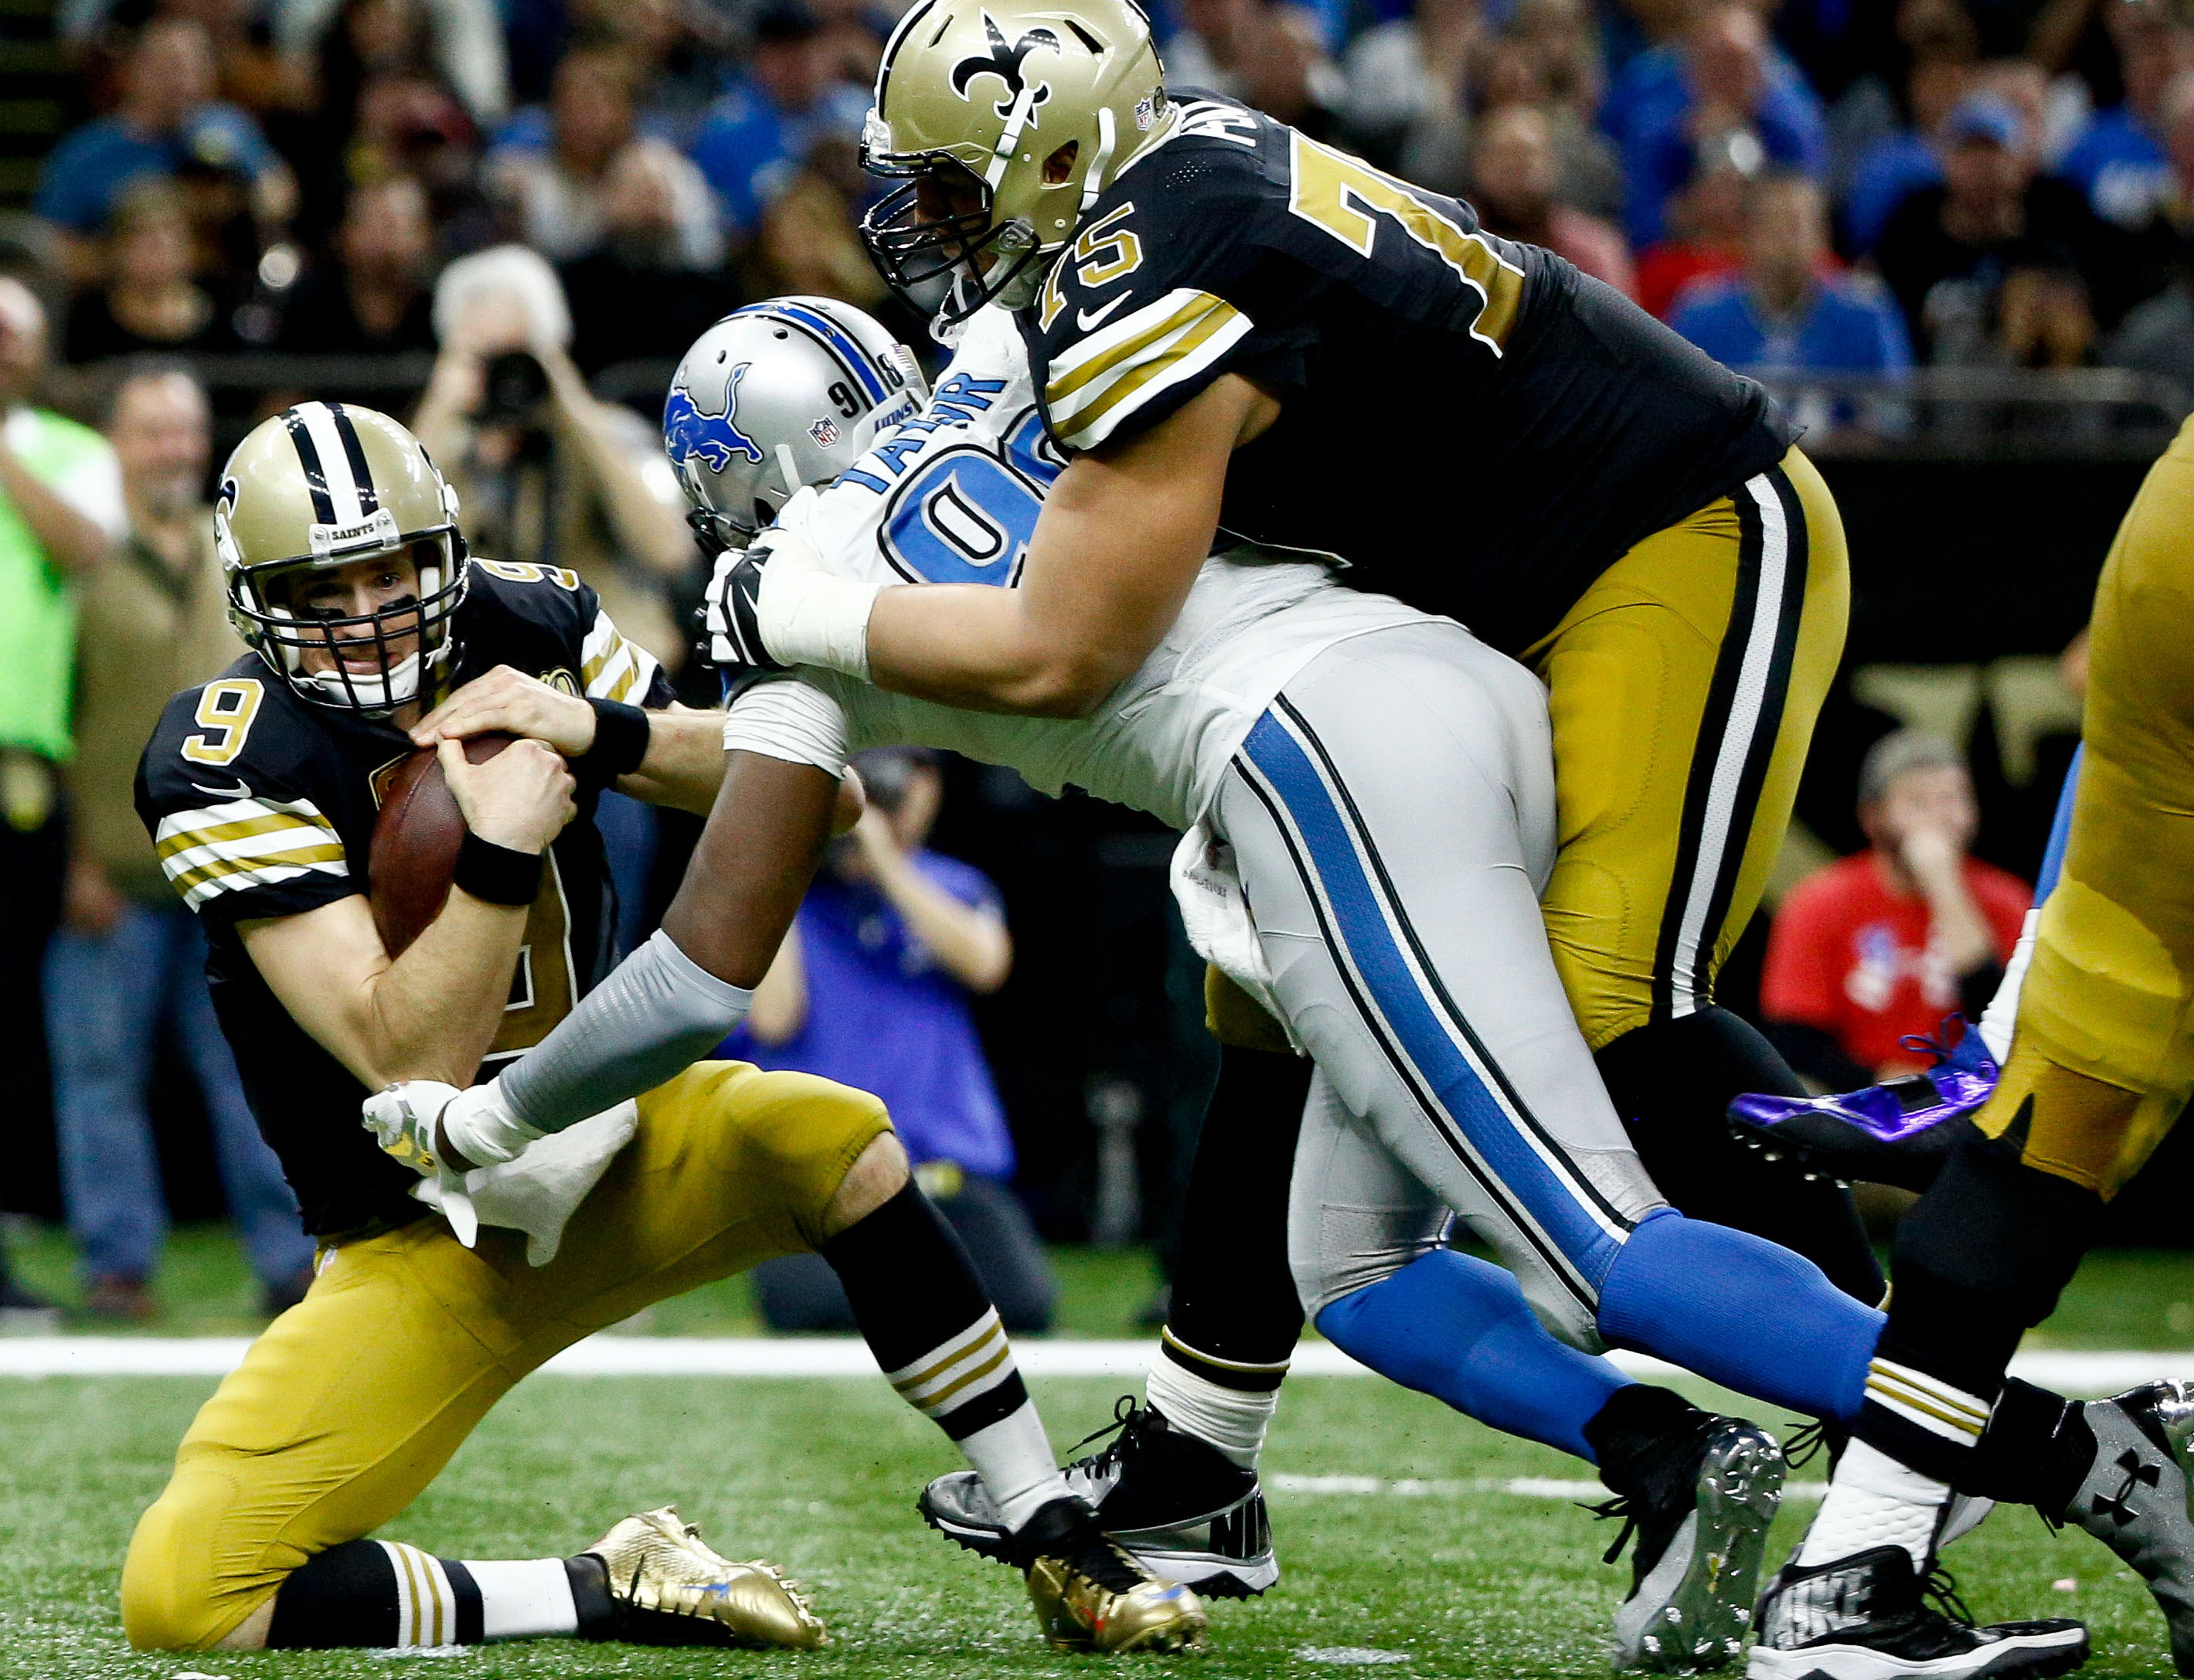 9725262-nfl-detroit-lions-at-new-orleans-saints